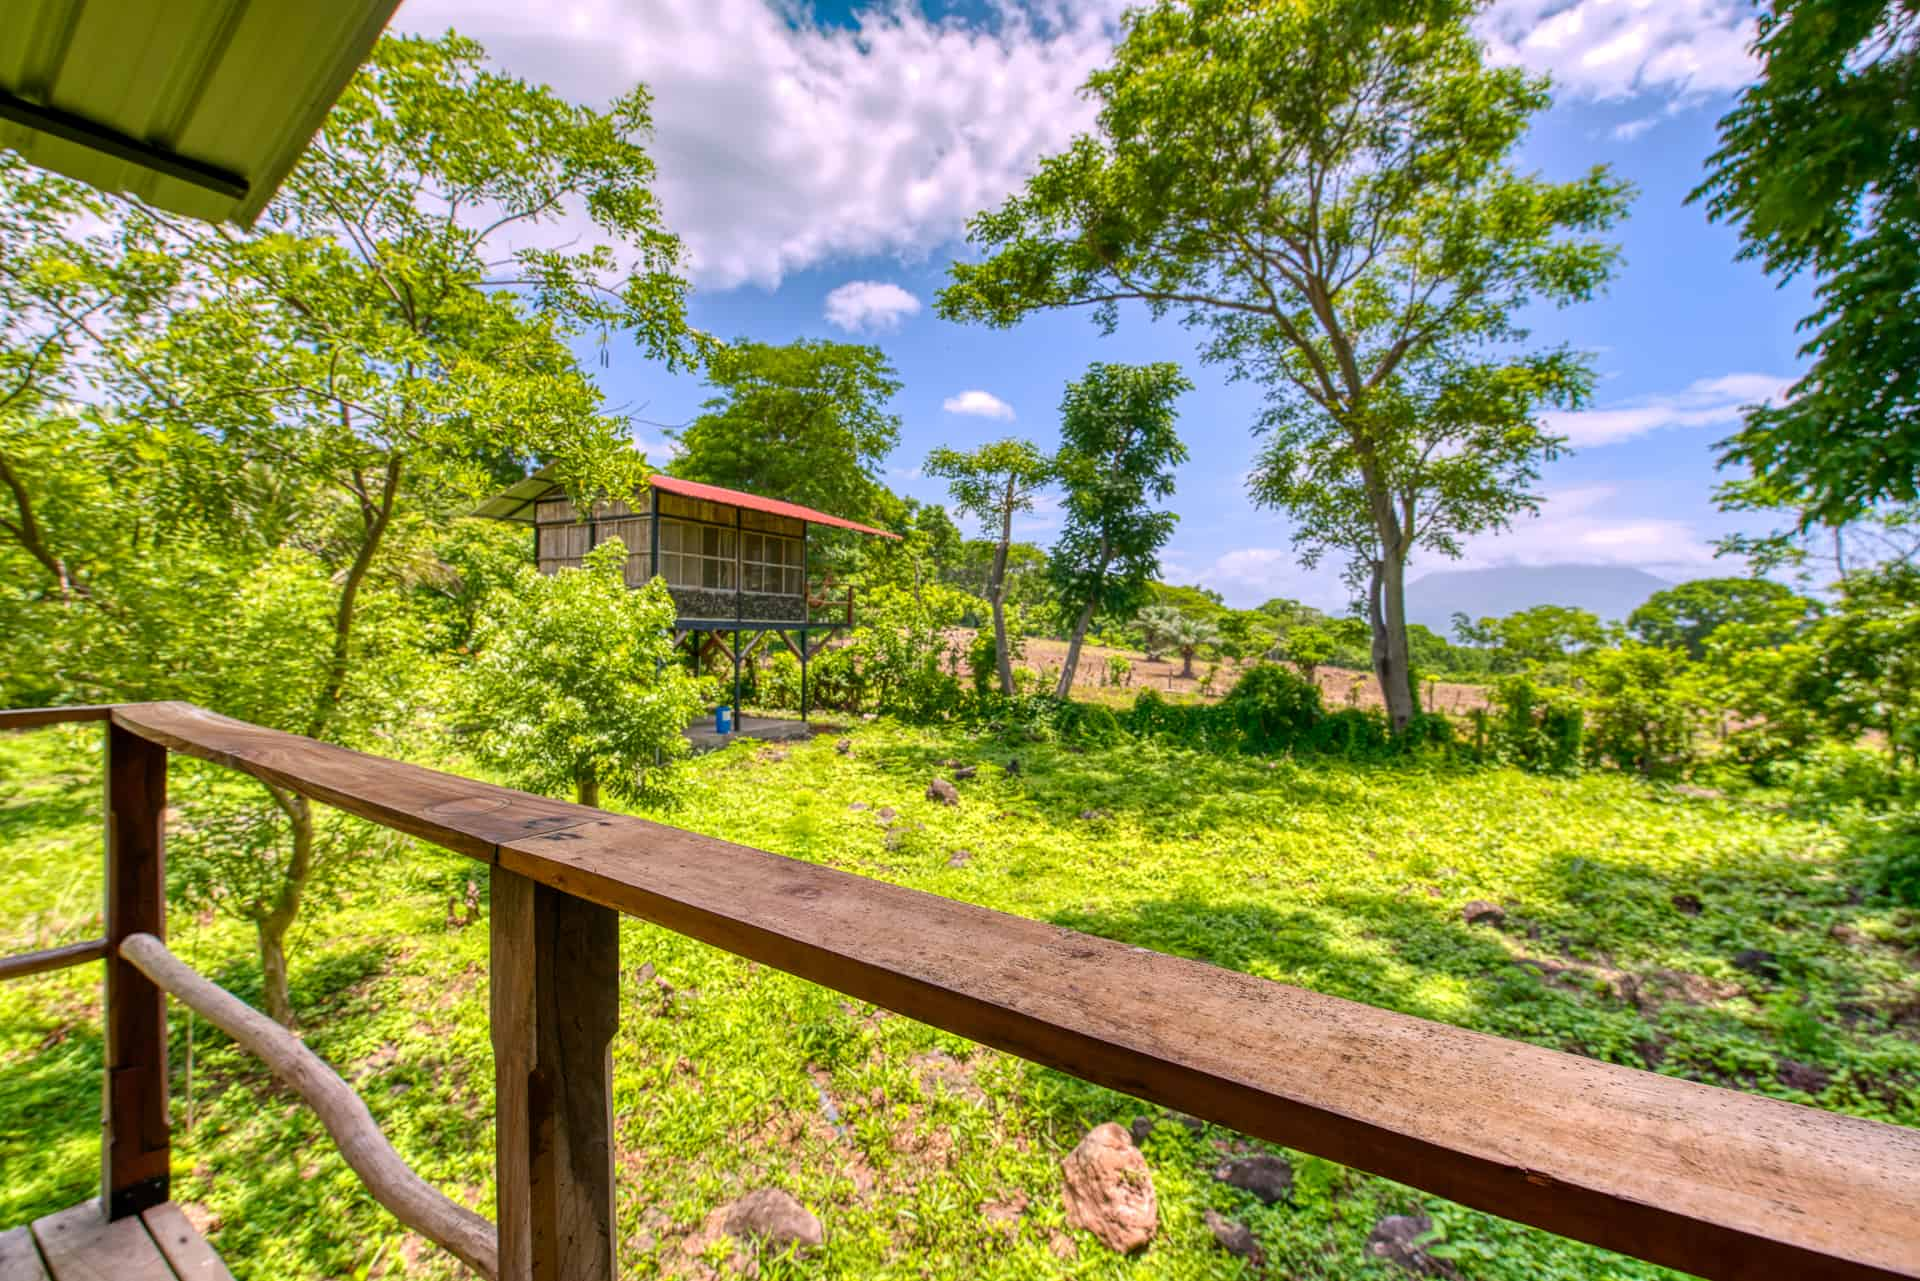 Lake views volcano view cabin Ometepe Island accommodation Jungle cabin ometepe Bambouseraie places to stay Nicaragua